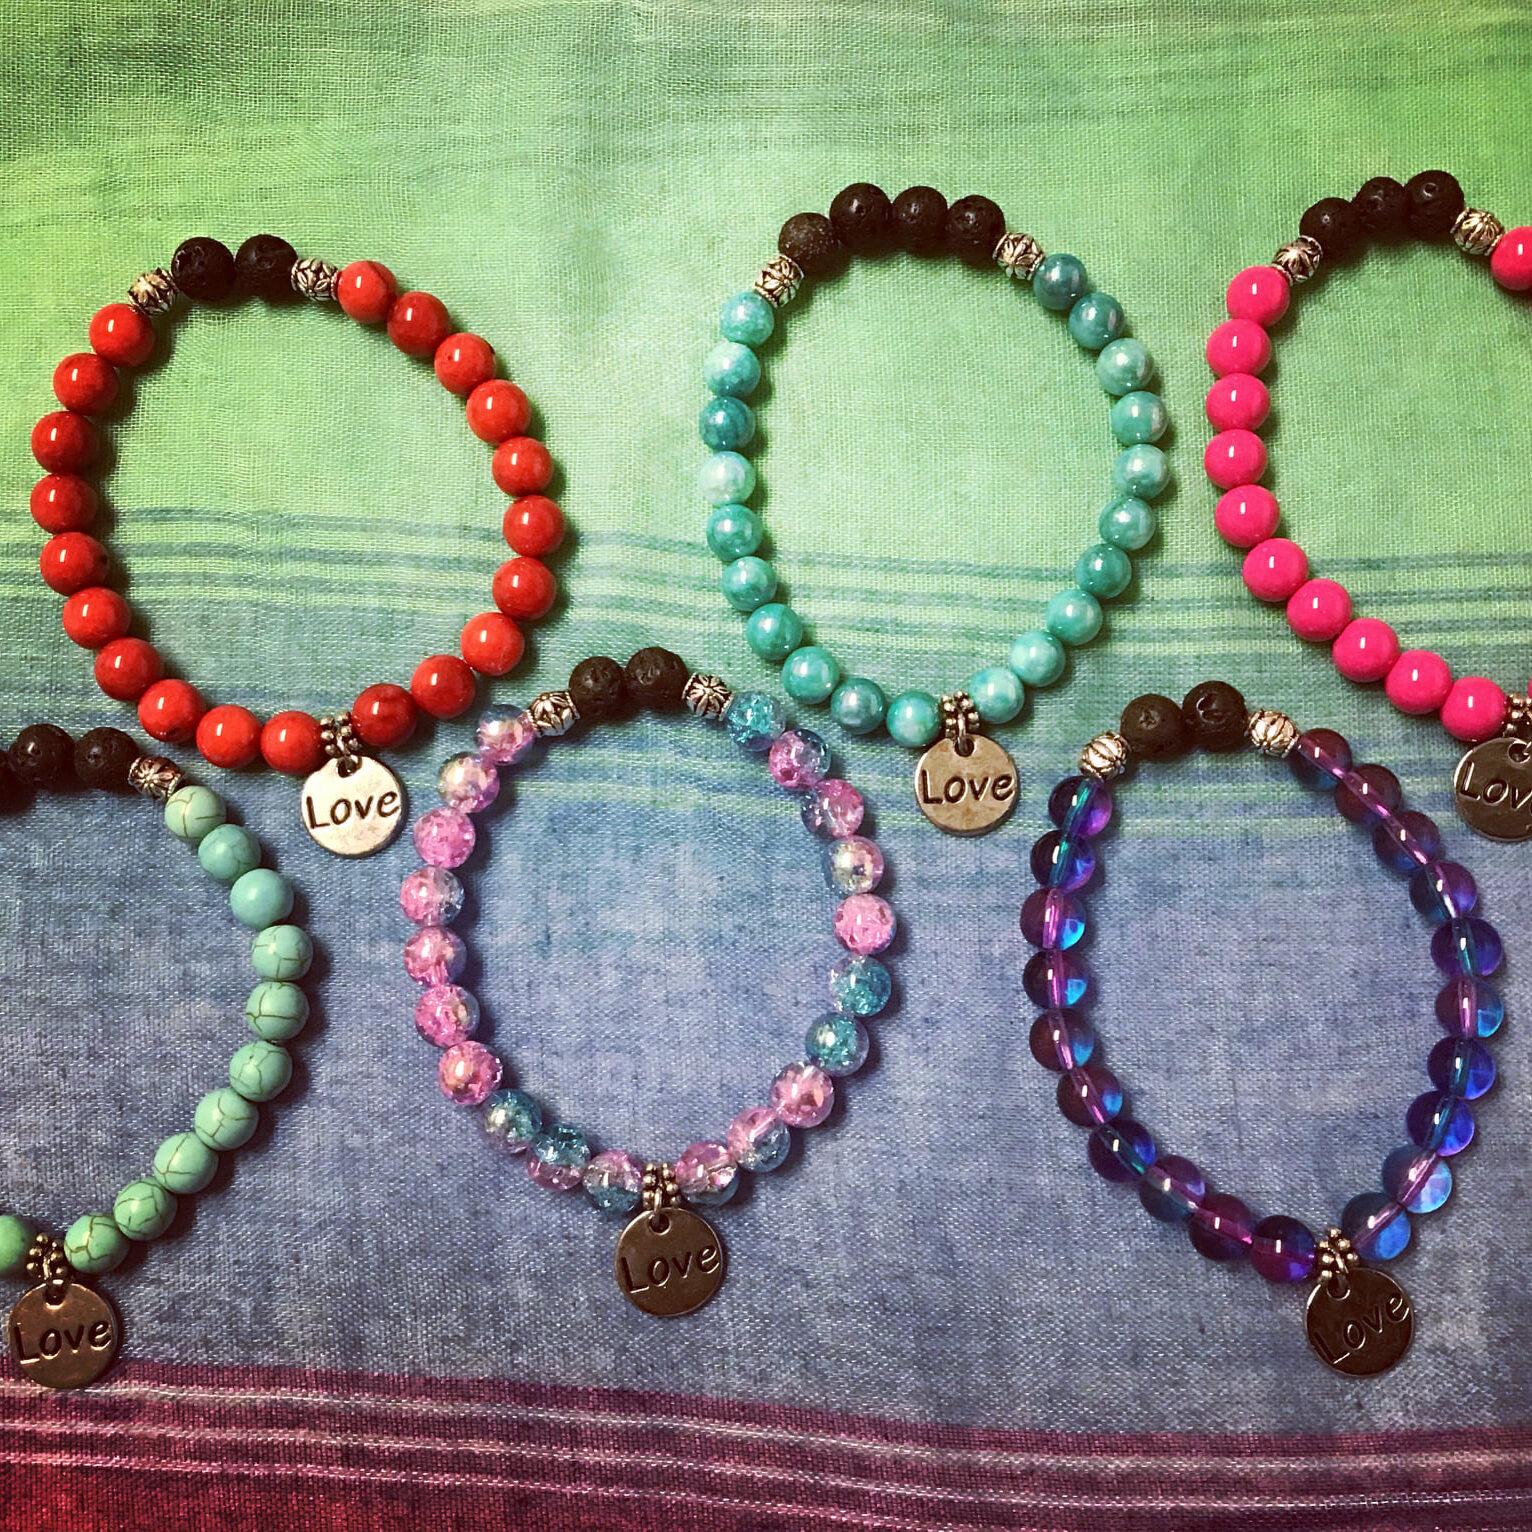 Creeative Gems, Natural Products, Essential Oil, Bracelets, Indigenous Artist, First Nations, Indigenous Arts Collective of Canada, Pass The Feather